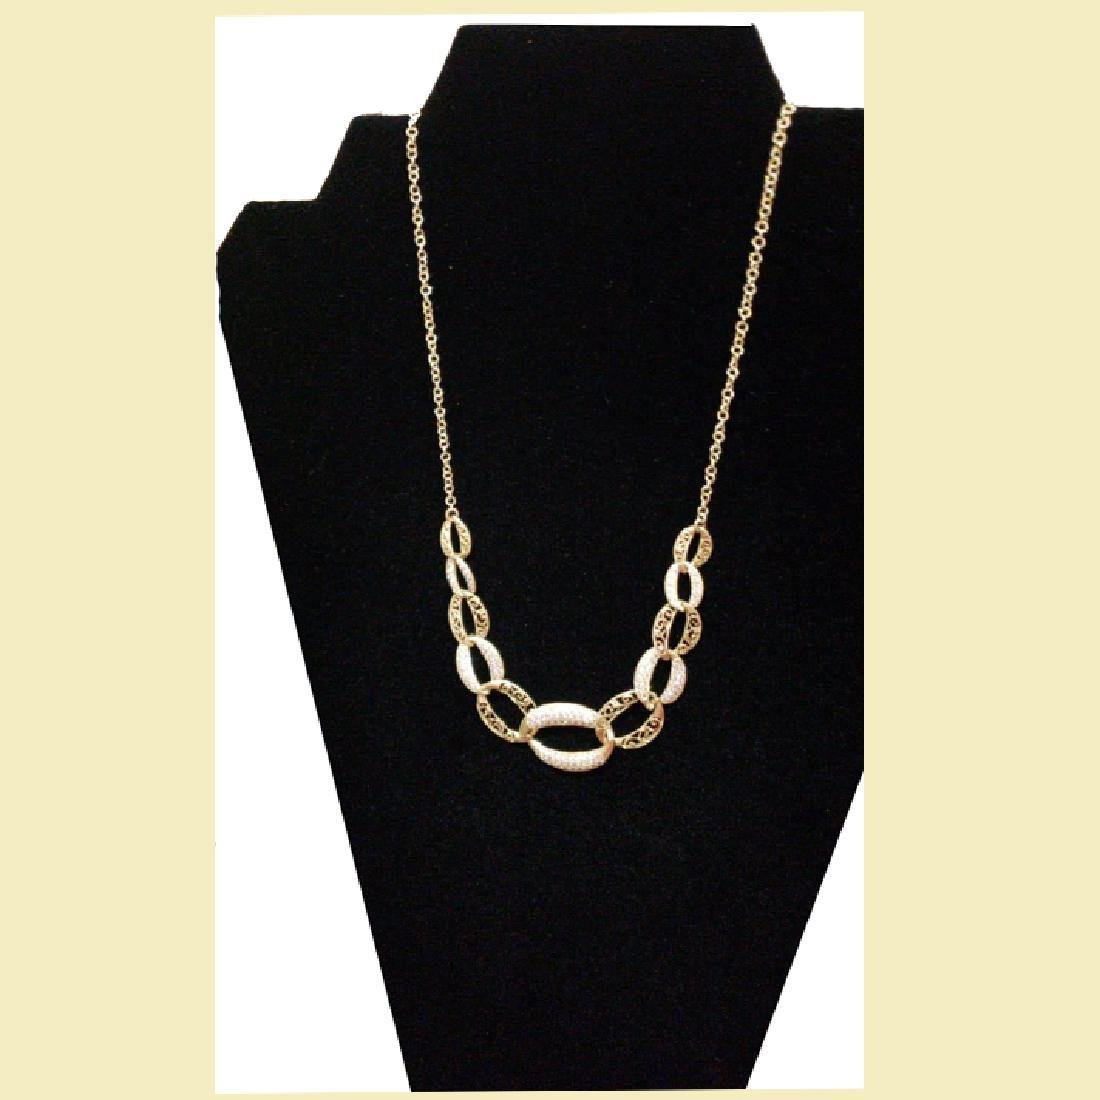 Set of stunning yellow gold necklace 14k with linked - 2